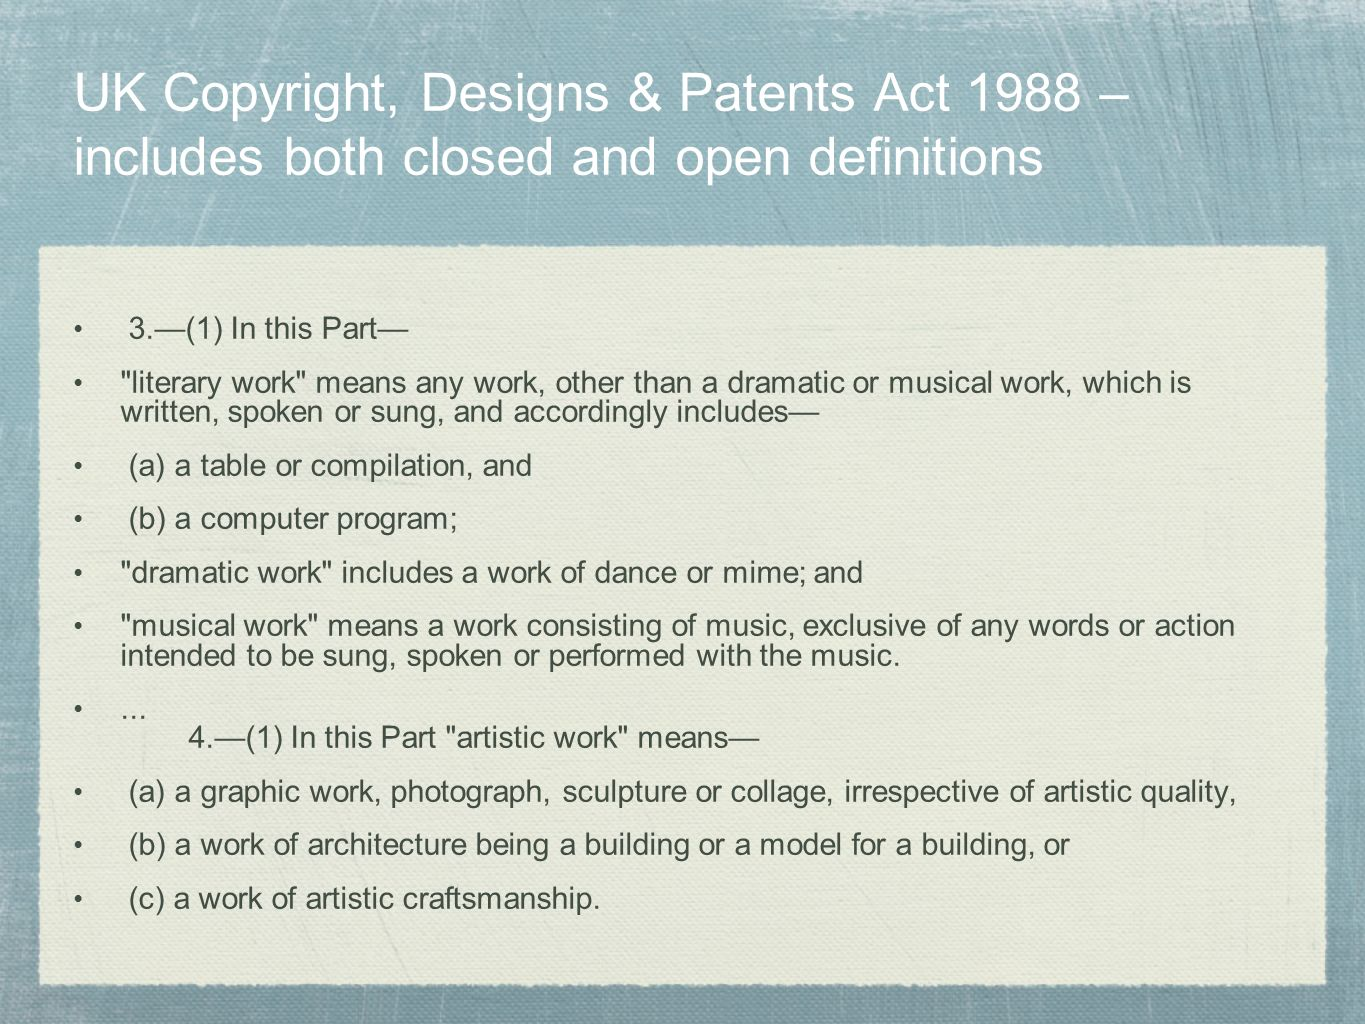 UK Copyright, Designs & Patents Act 1988 – includes both closed and open definitions